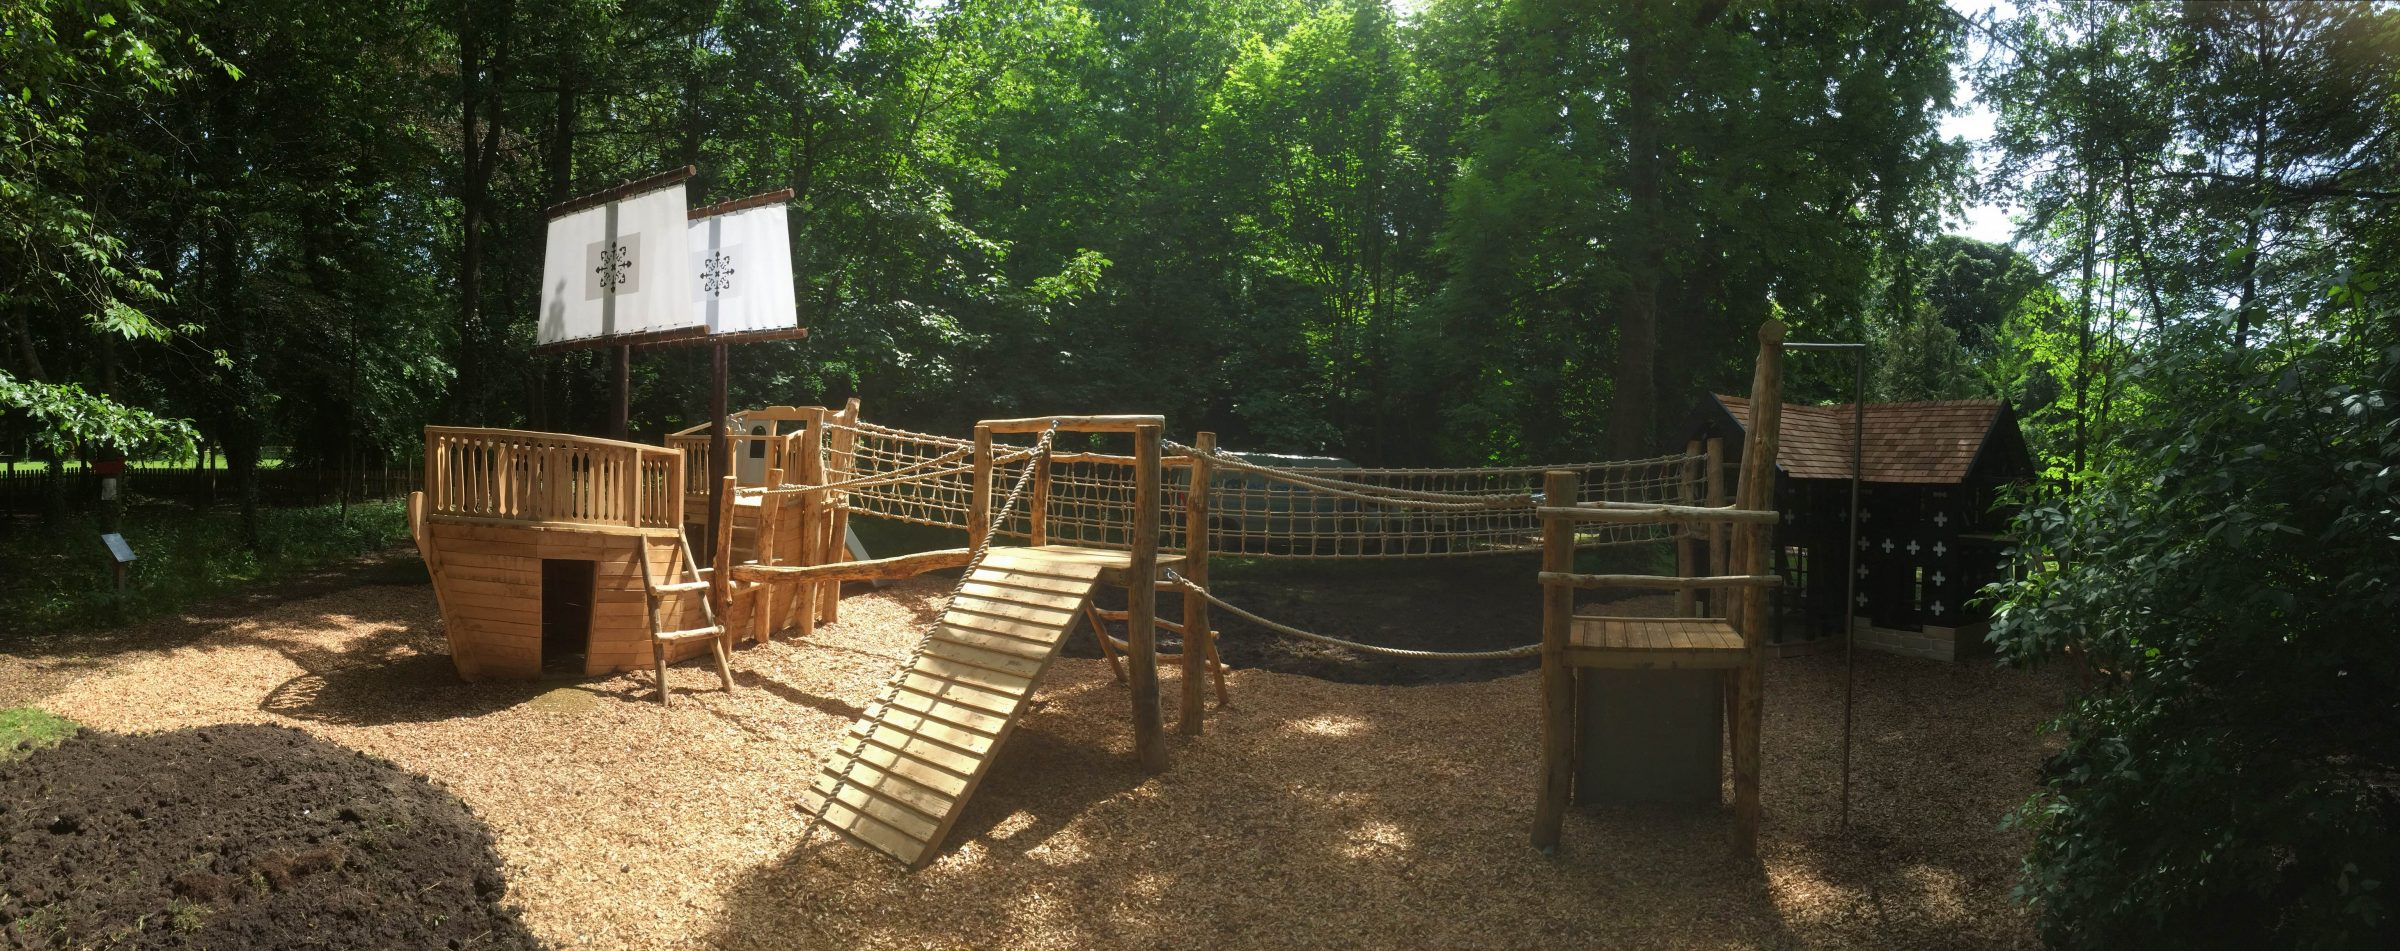 panorama-of-play-area-samlesbury-hall-childrens-outdoor-play-area-with-replica-landmark-and-the-mayflower-play-ship-by-flights-of-fantasy